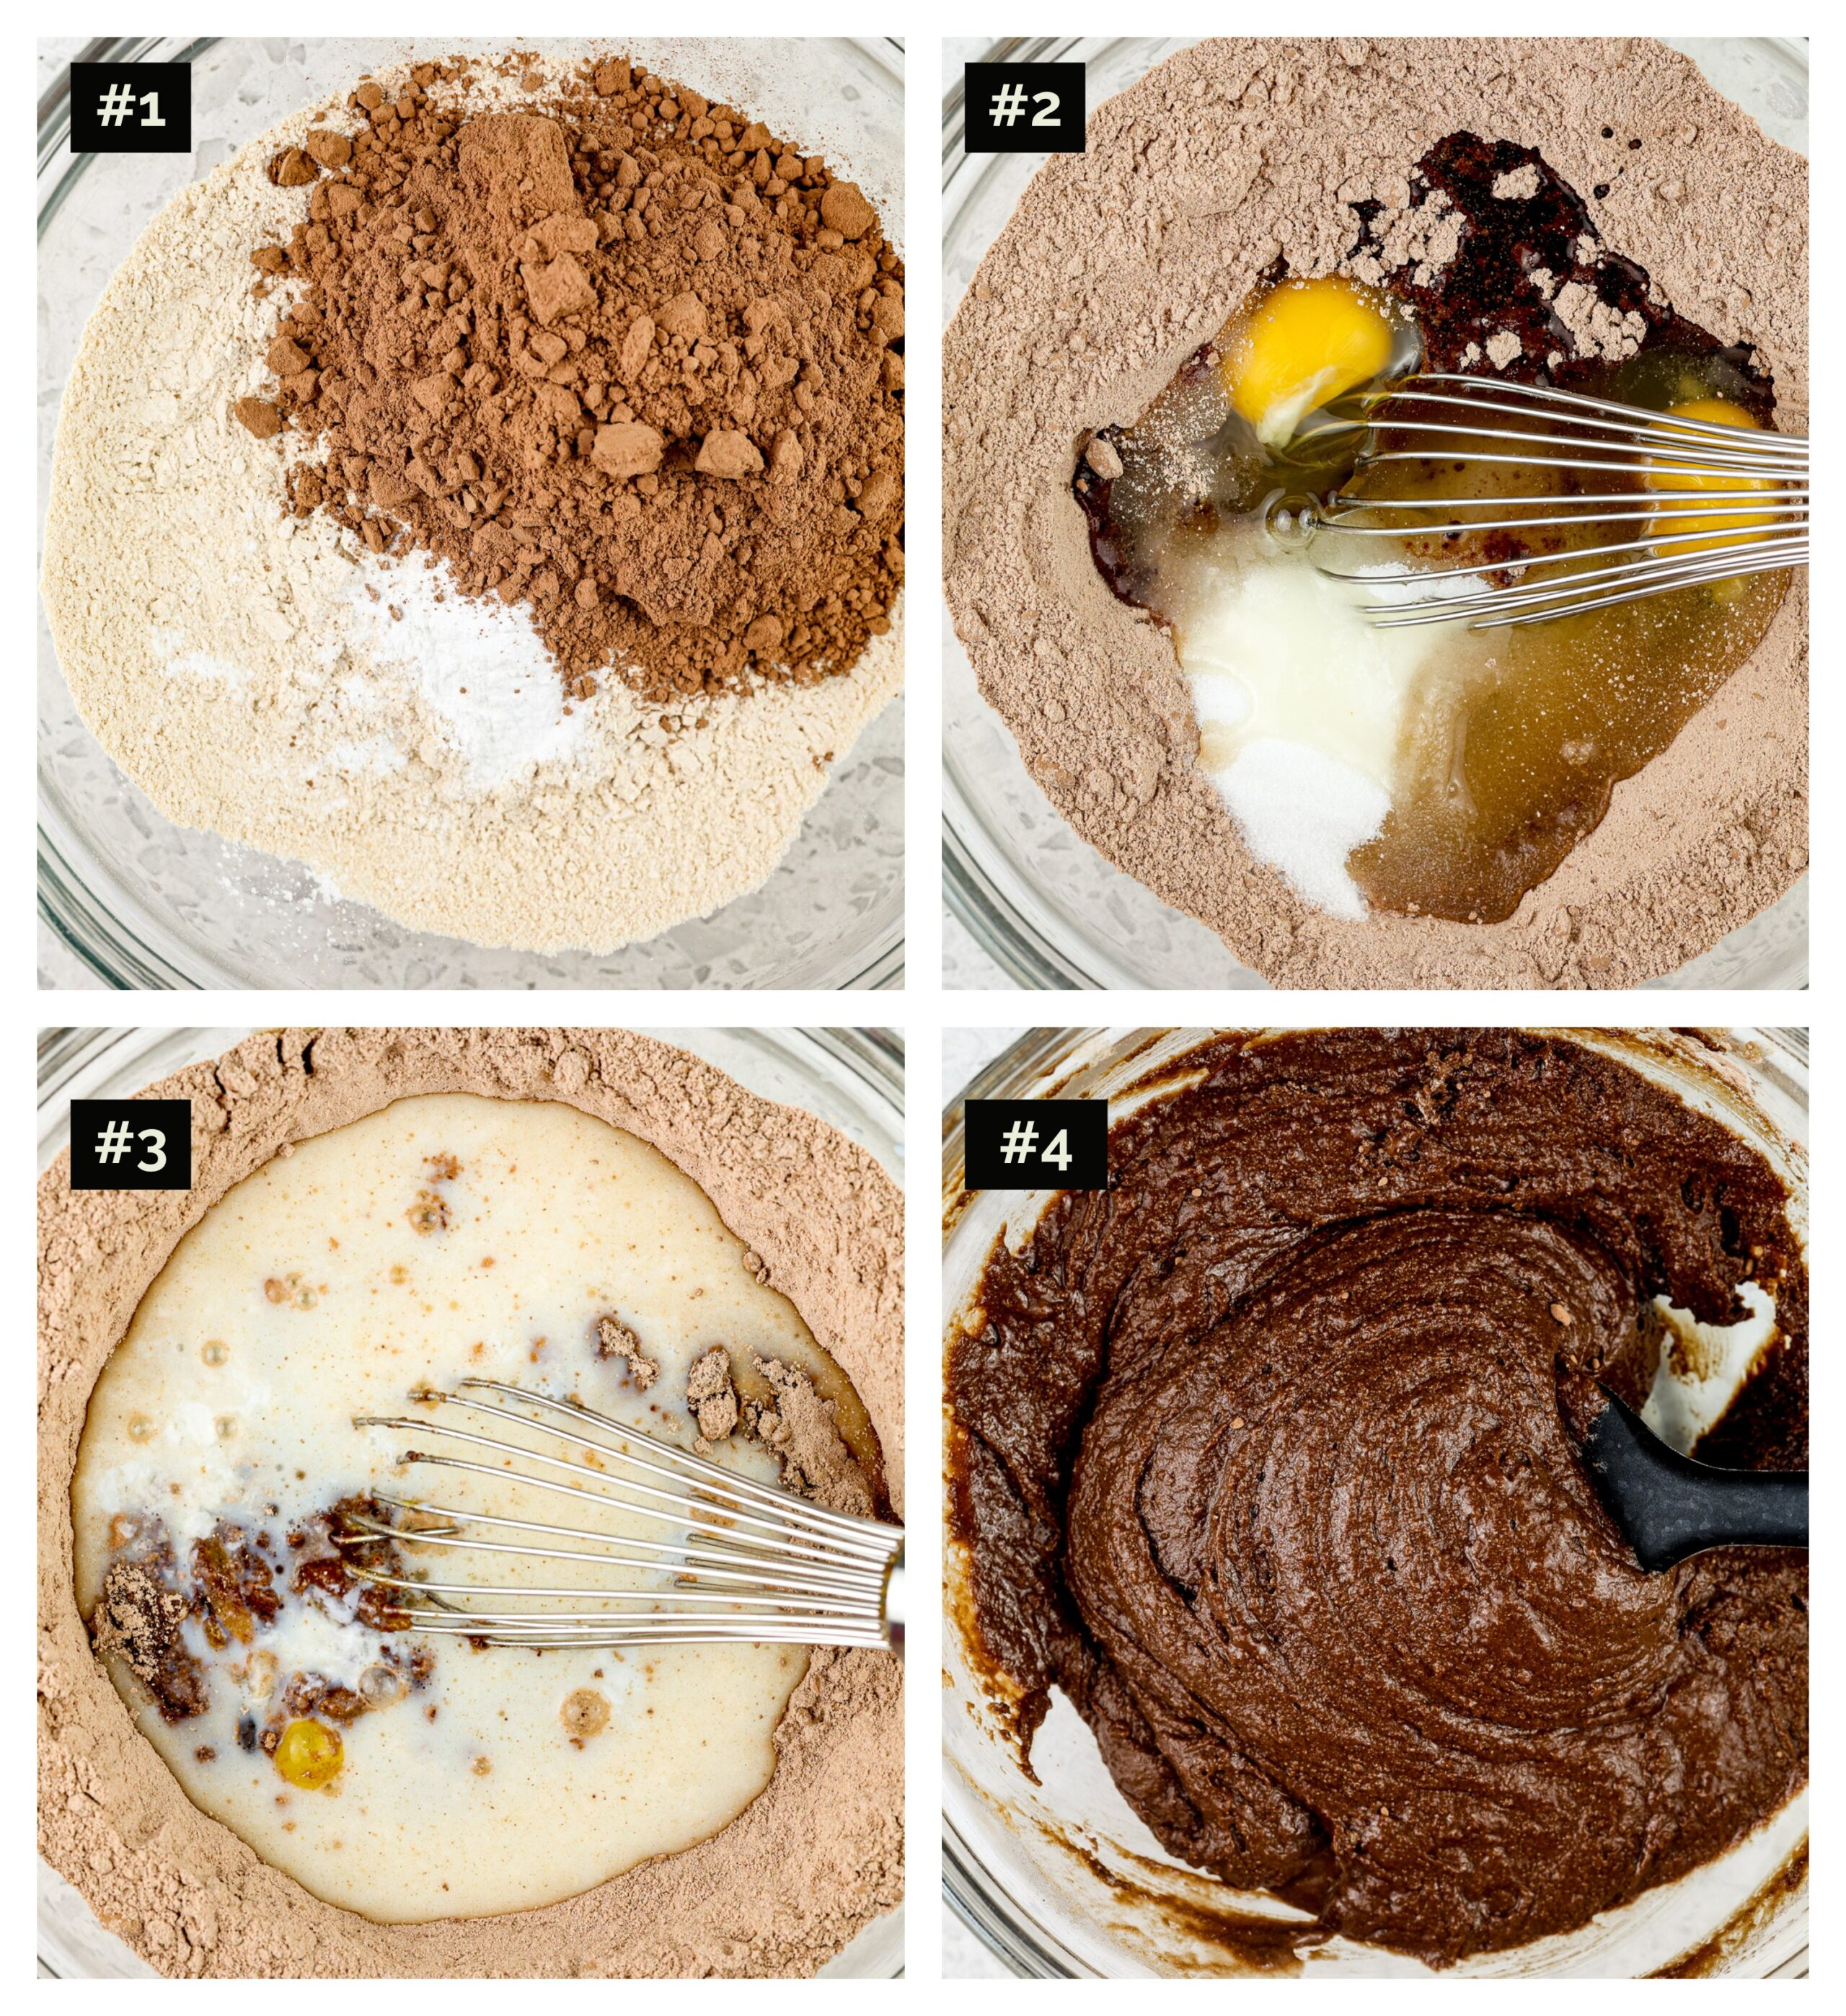 Four picture collage with steps to make chocolate cake, including glass bowl with cocoa powder and flours, then egg being whisked in, then adding the milk, then the thick chocolate cake batter.